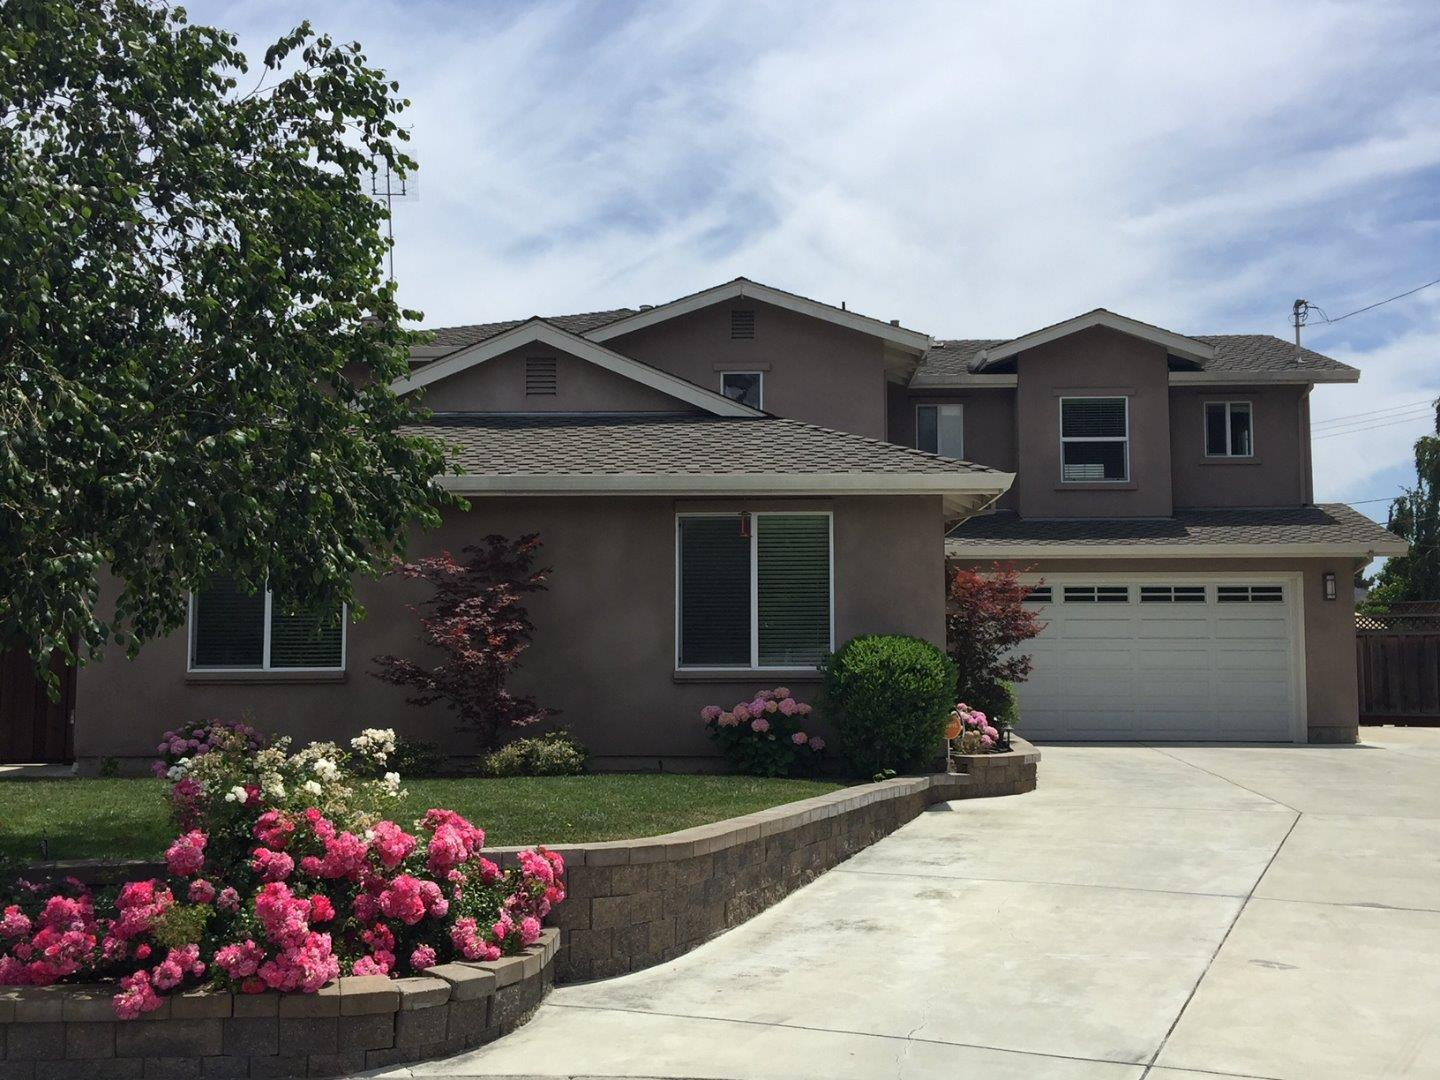 Single Family Home for Sale at 2337 Roosevelt Court 2337 Roosevelt Court Santa Clara, California 95051 United States